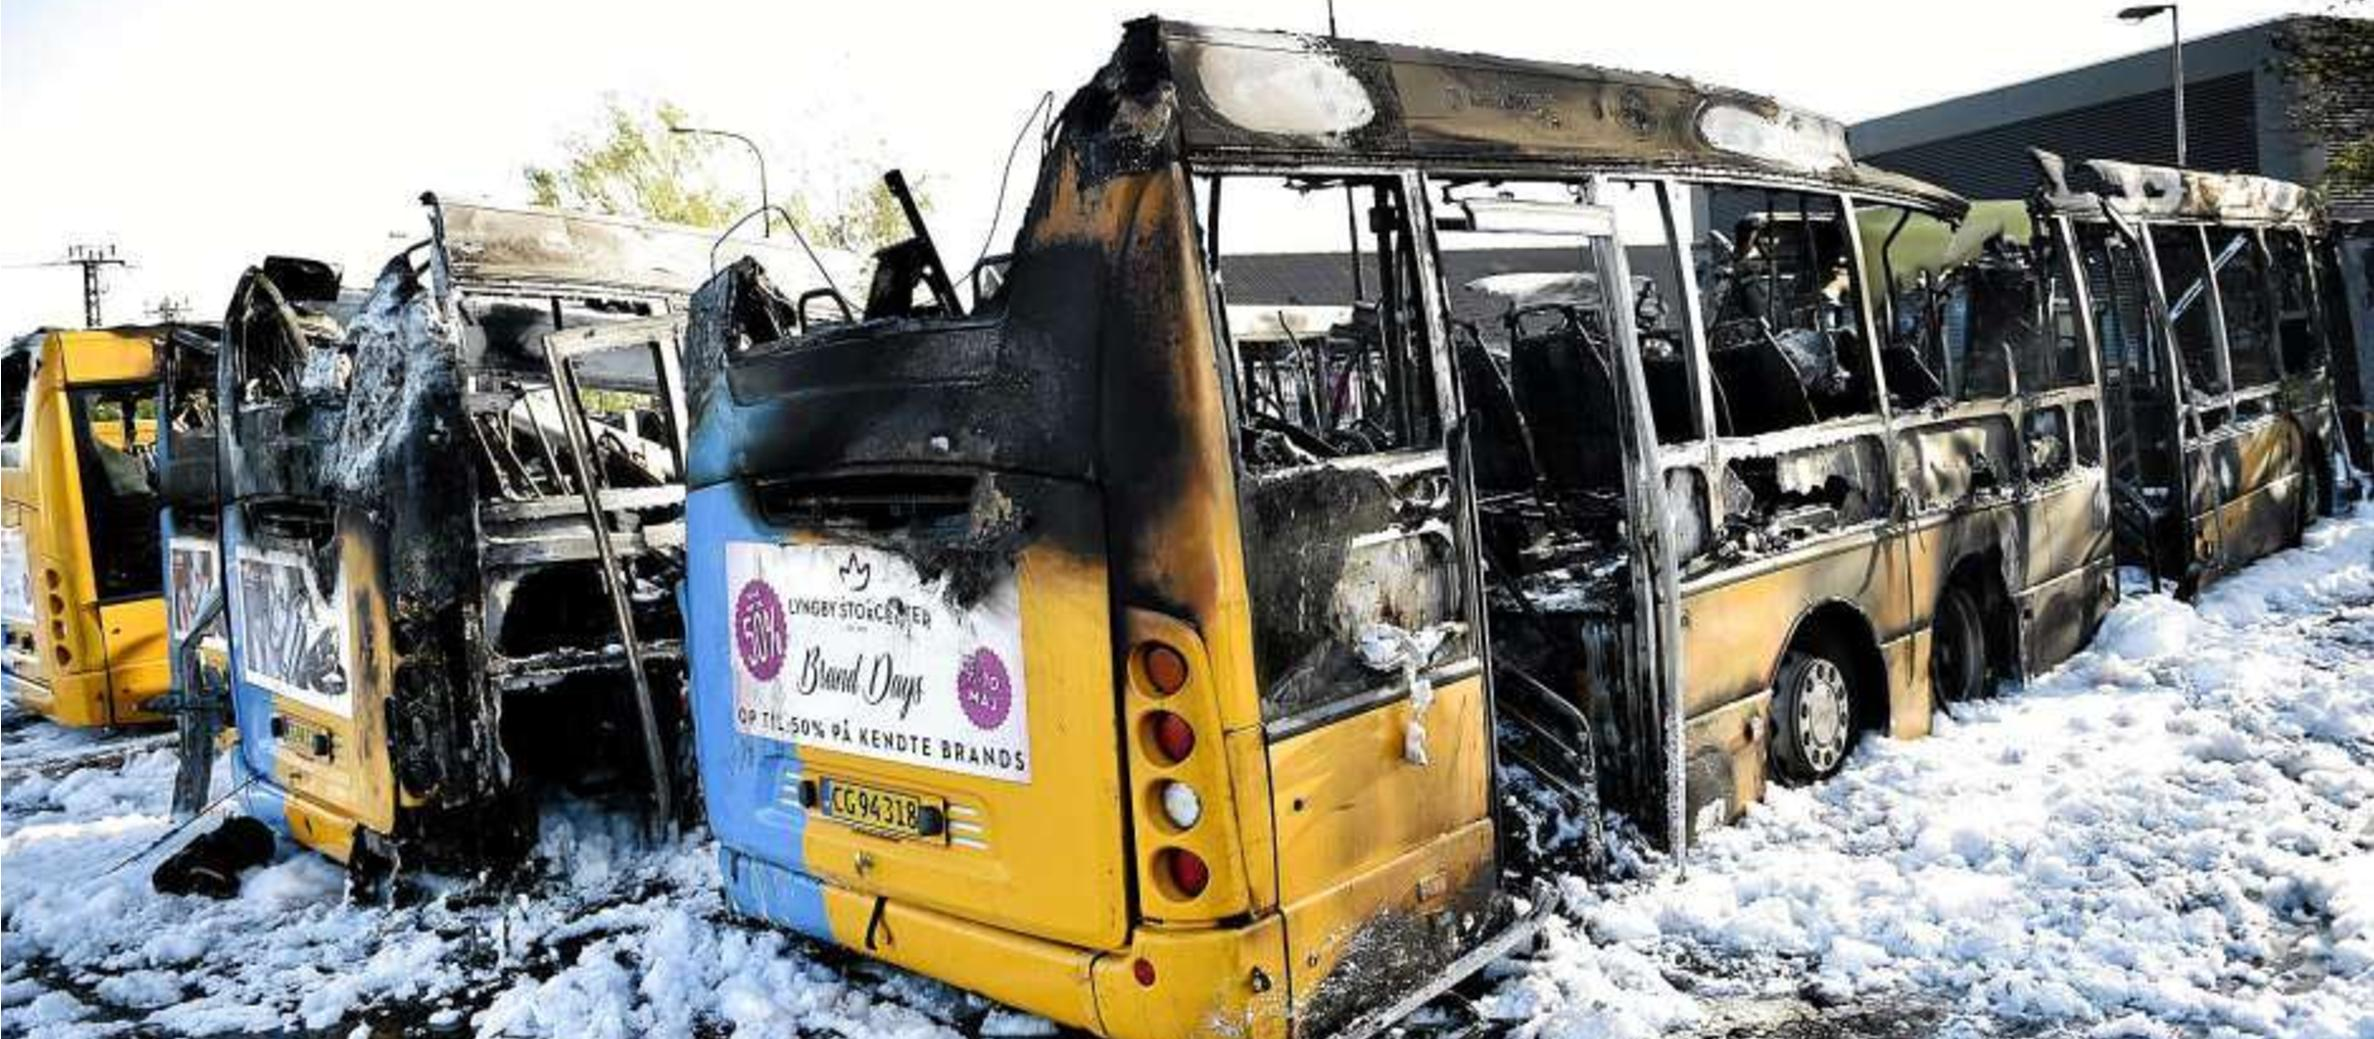 Denmark: Four city buses burned in suspected anti-Israel attack